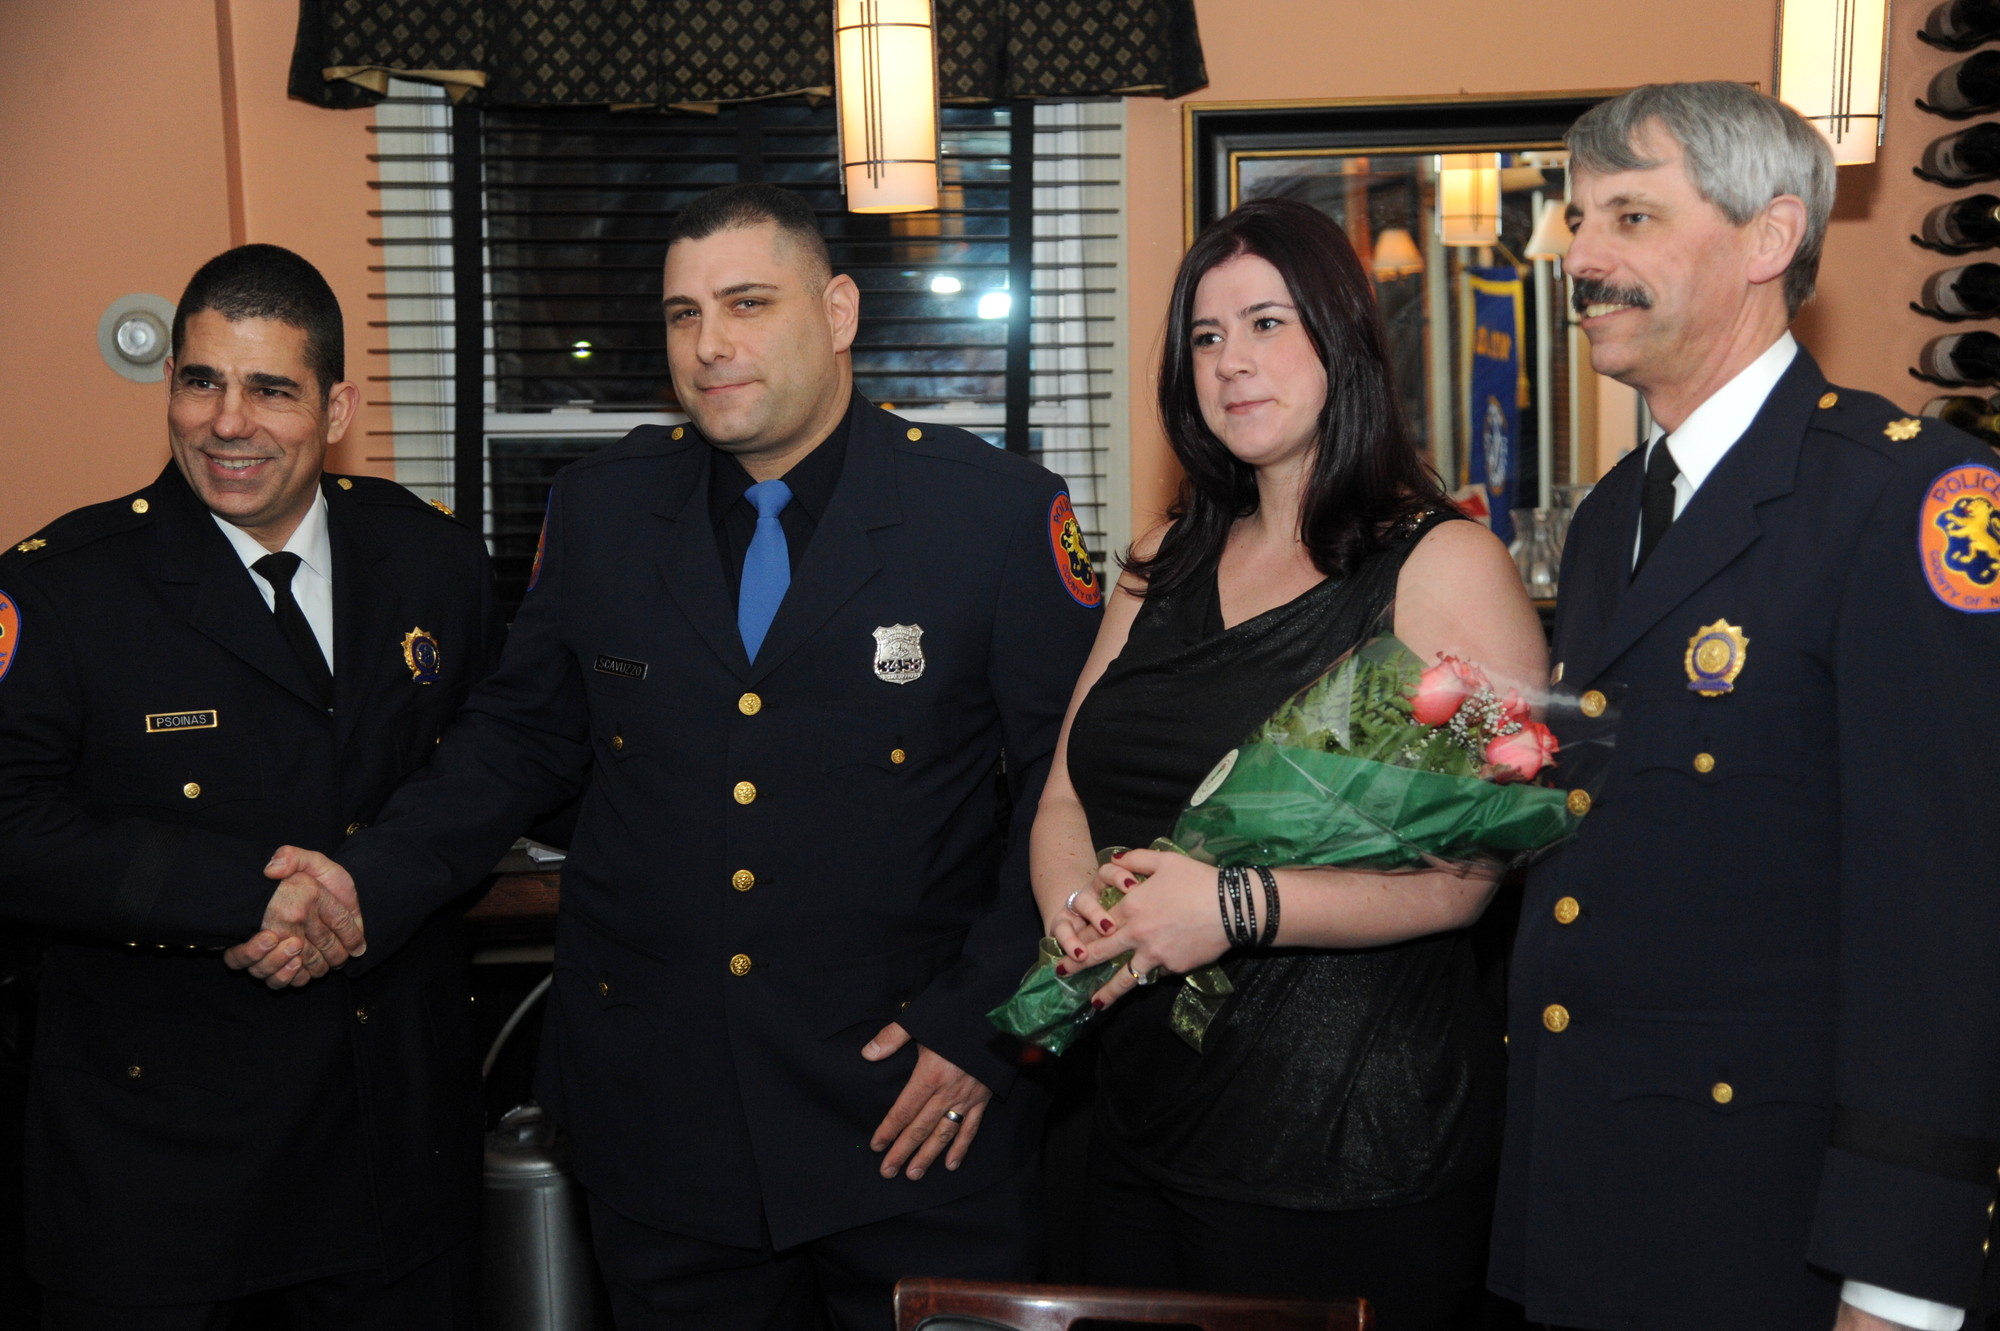 During Kiwanis Club of the Five Towns Police Awards Night, Deputy Inspector Robert Psoinas, left, congratulated police officer Santo Scavuzzo and his wife, Lisa. At right was Deputy Inspector Kenneth Hettler.